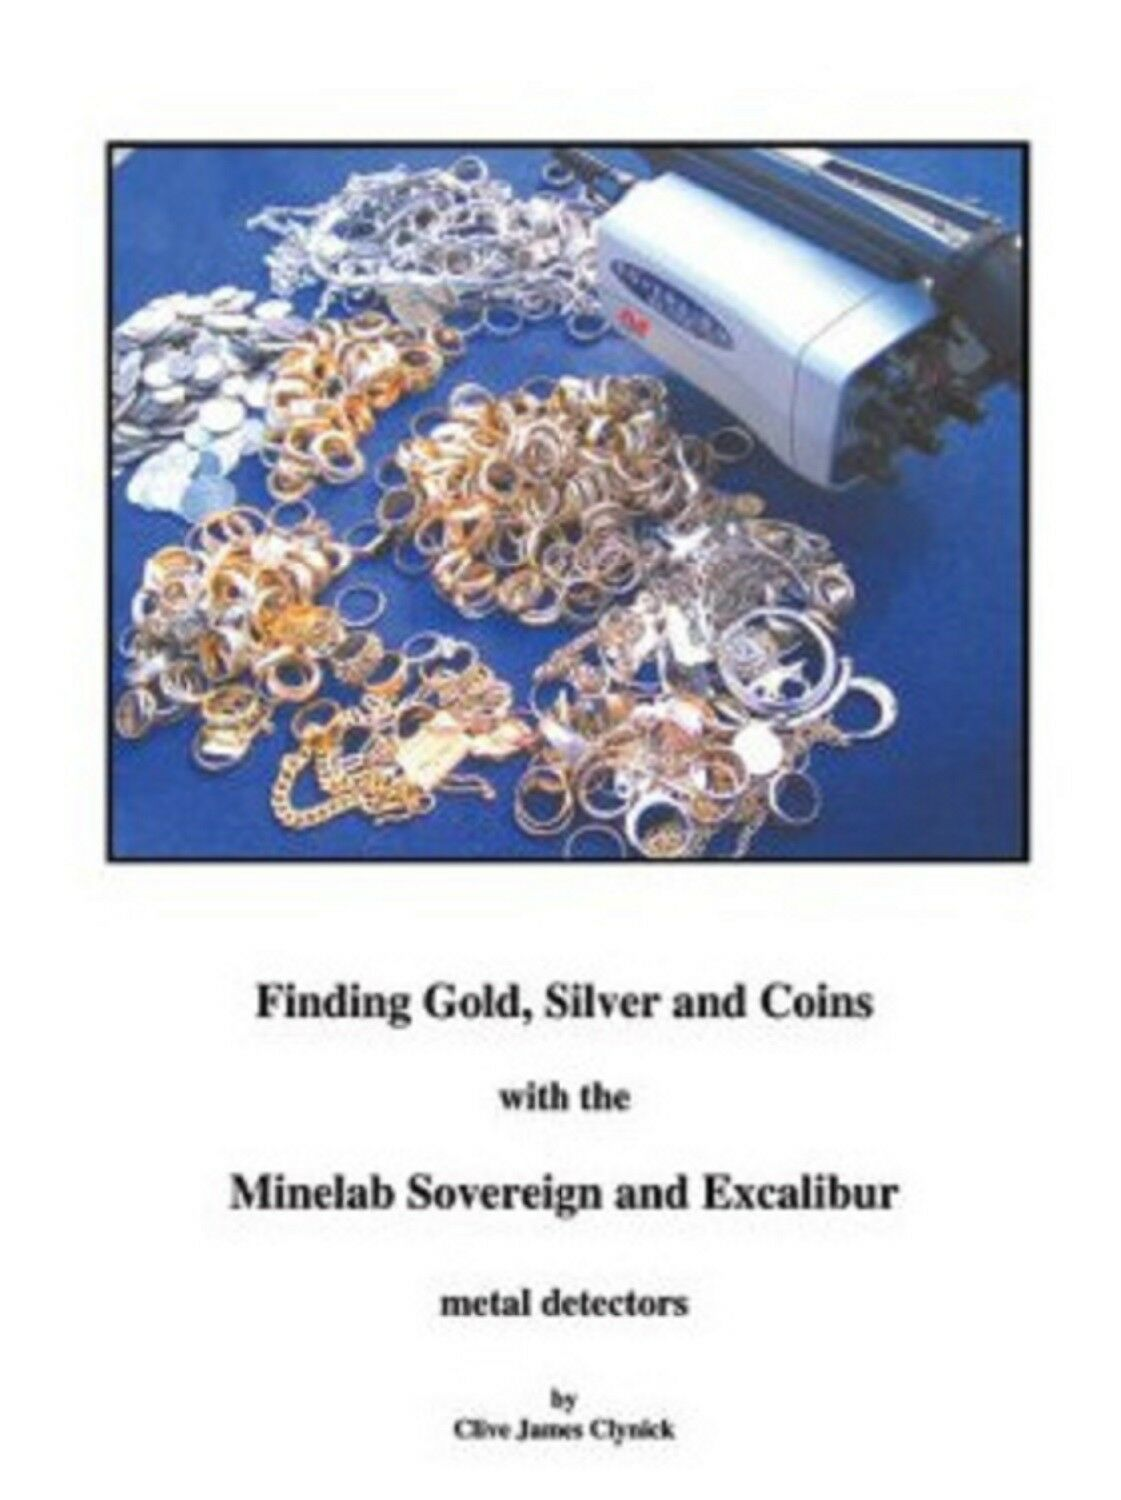 Finding Gold/Silver & Coins with  Minelab Sovereign & Excalibur Metal Detectors